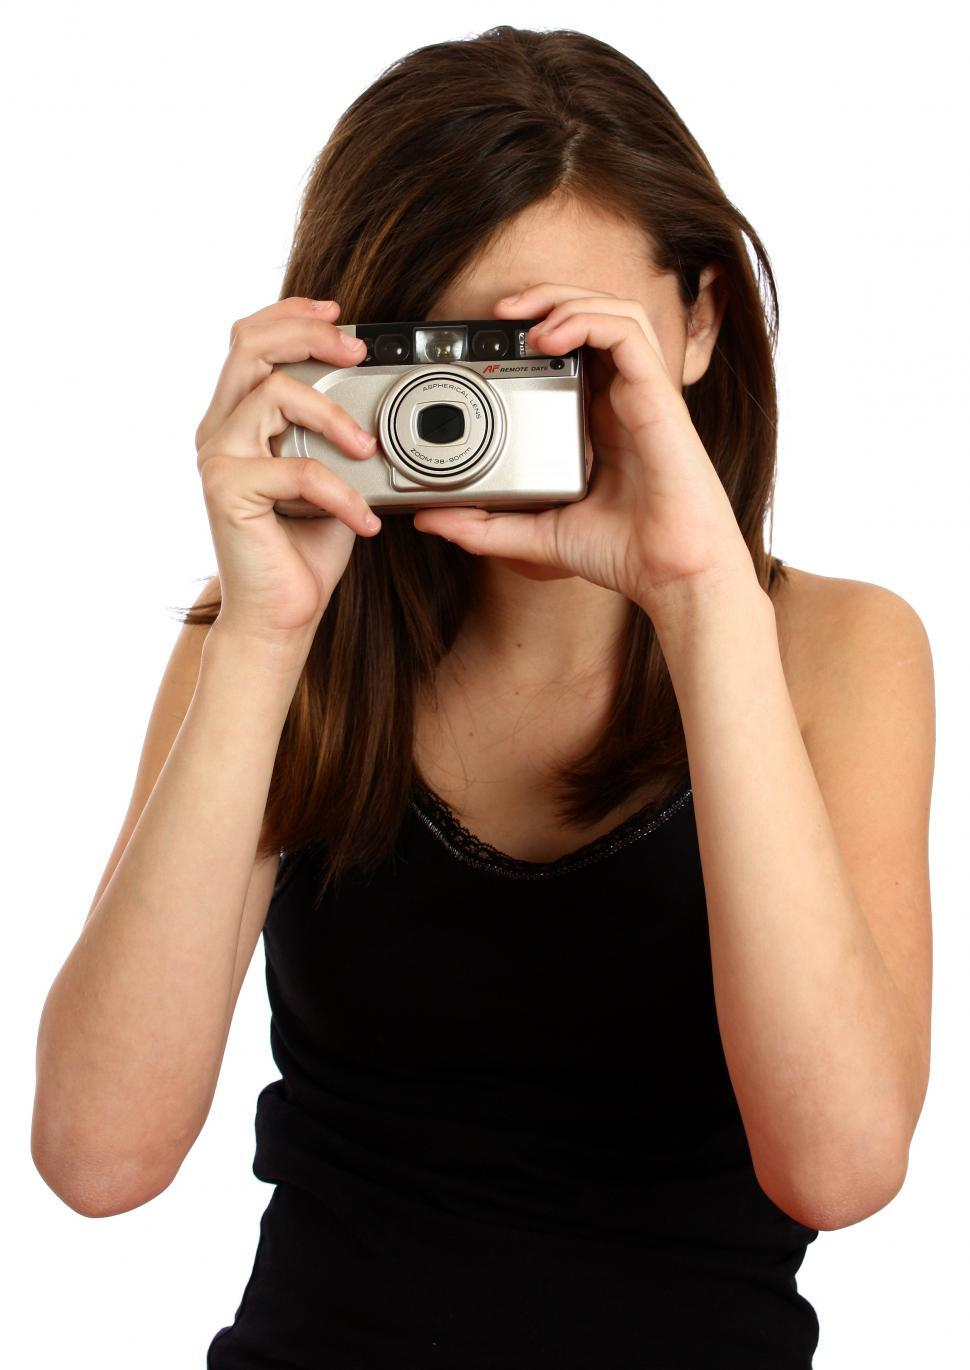 Download Free Stock HD Photo of A cute young girl taking a picture with a camera Online